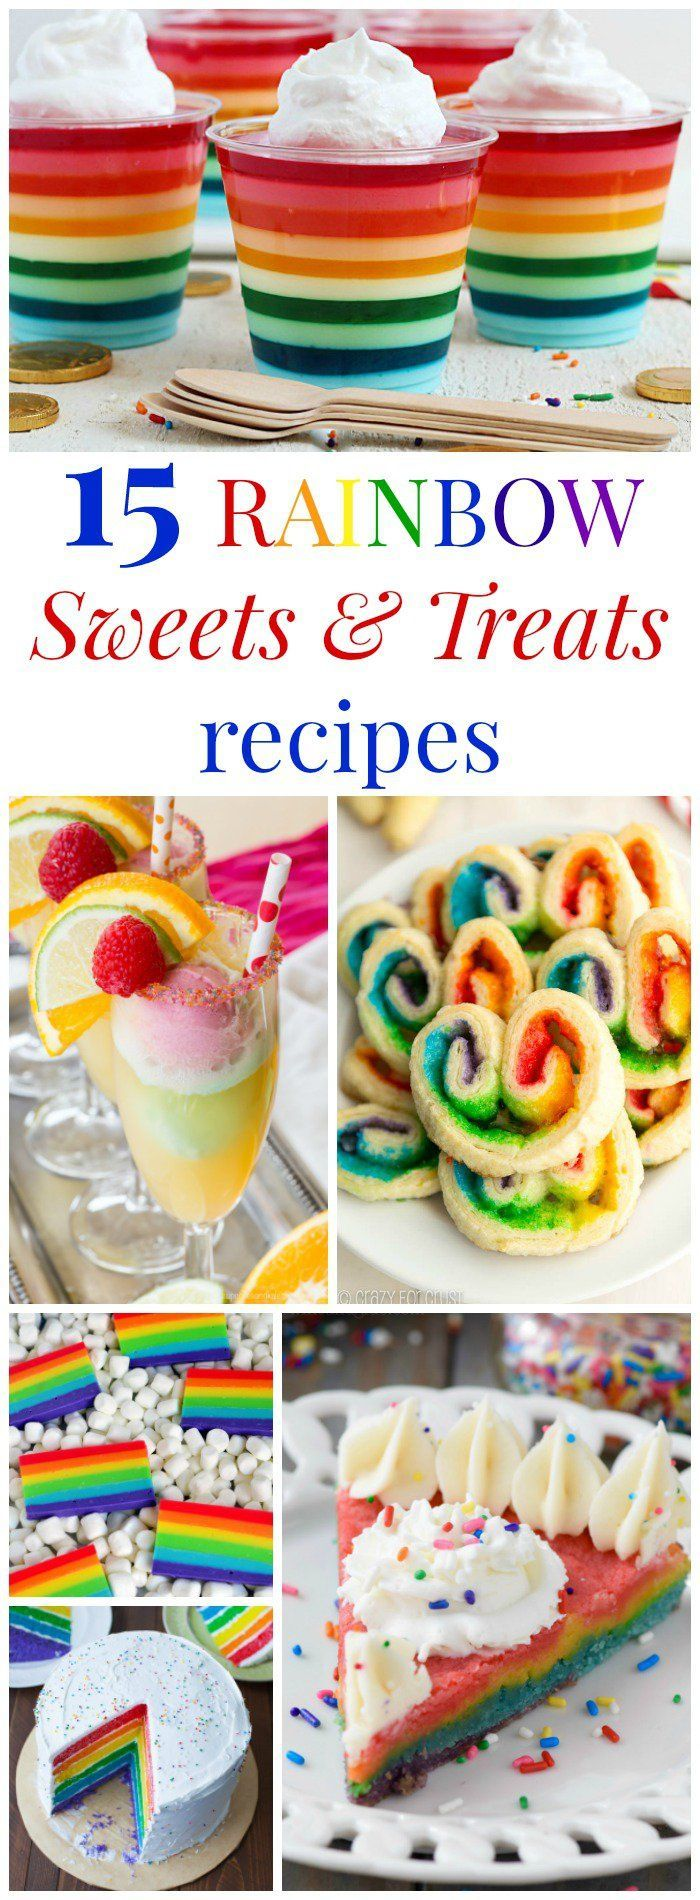 15 Rainbow Sweets and Treats - colorful dessert recipes for birthdays, St. Patrick's Day, and more!